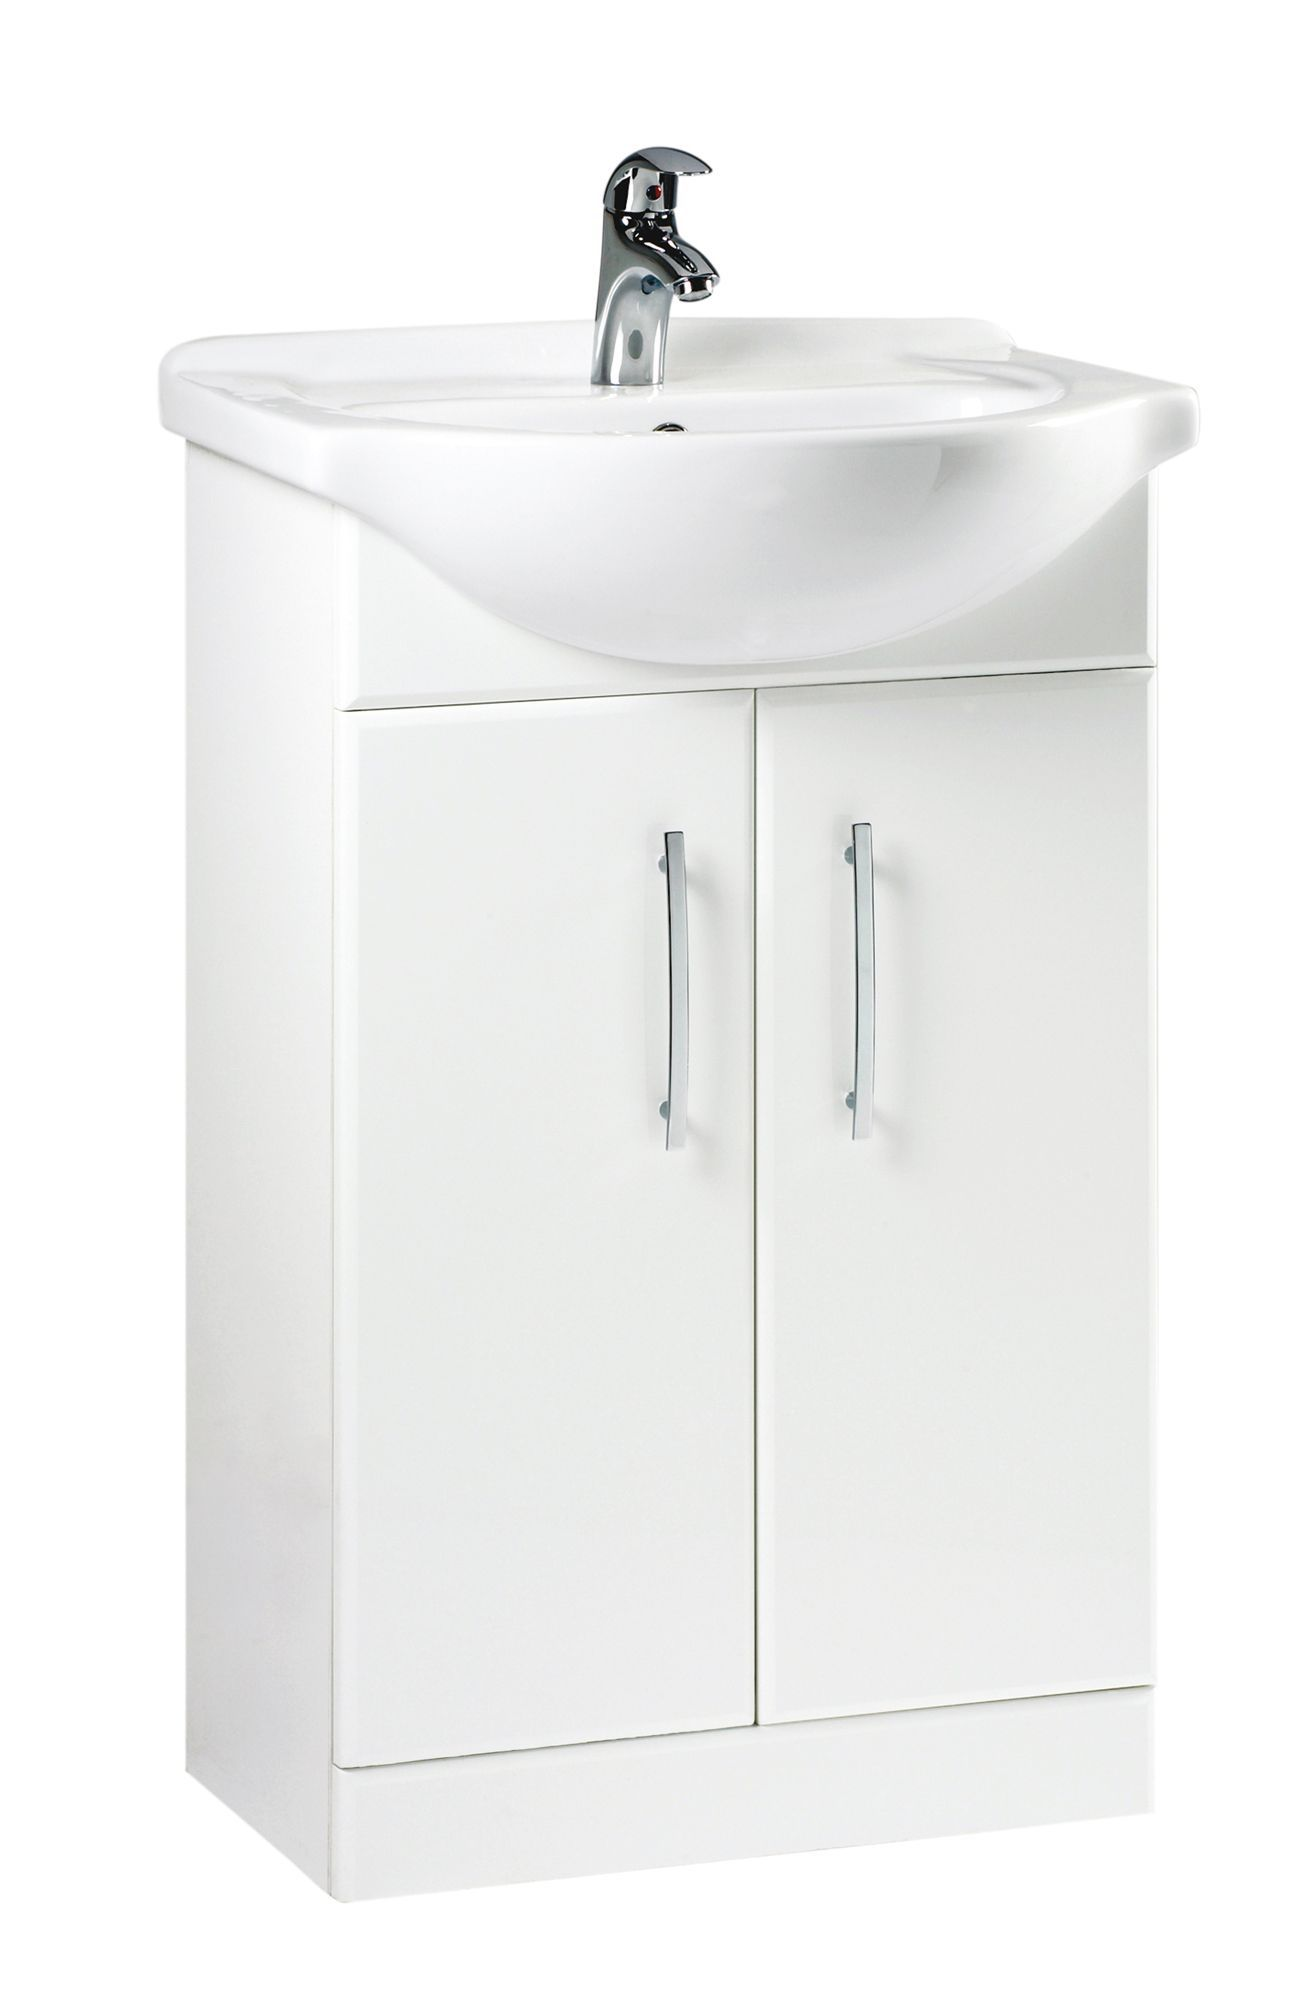 bathroom cabinets b and q b amp q white vanity unit amp basin departments diy at b amp q 11236